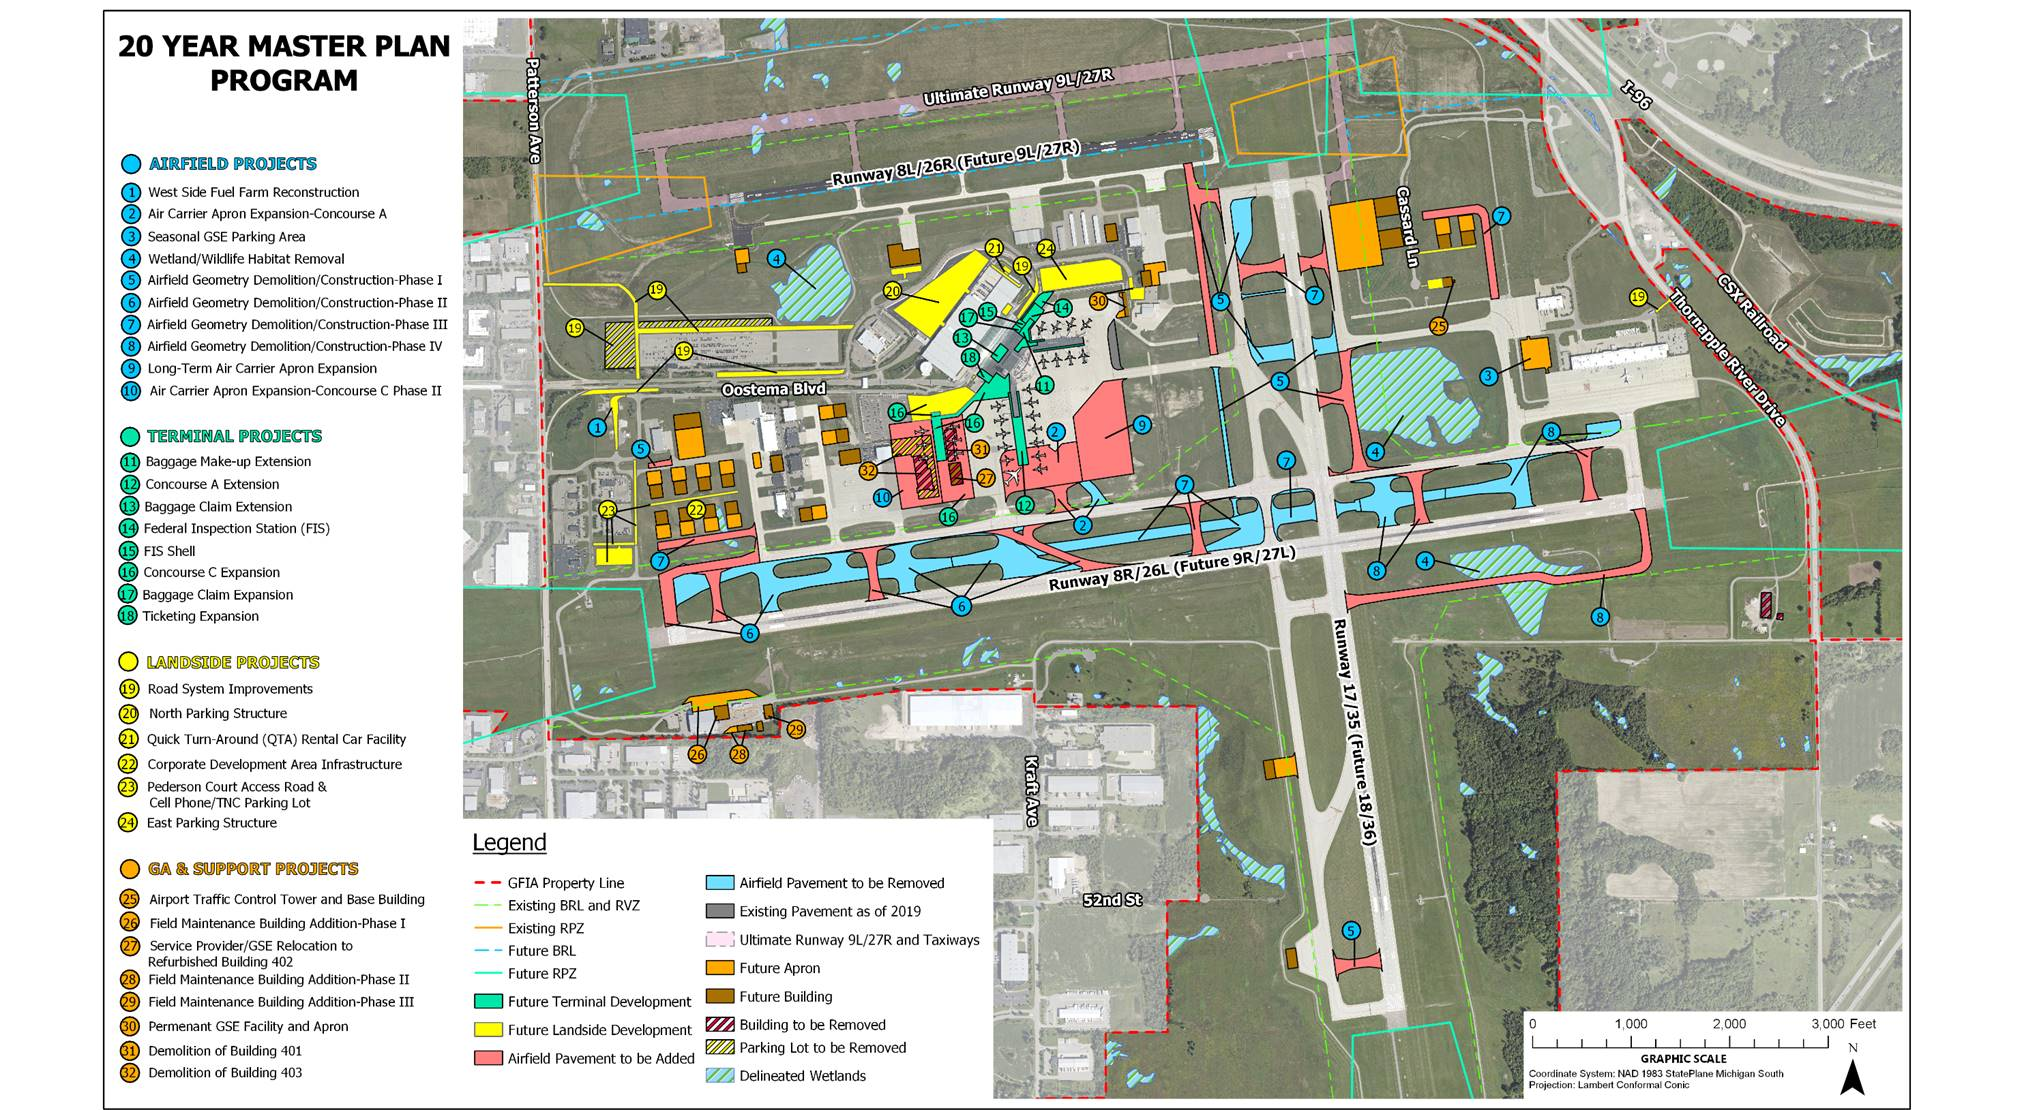 Ford Airport submits 20-year plan to board